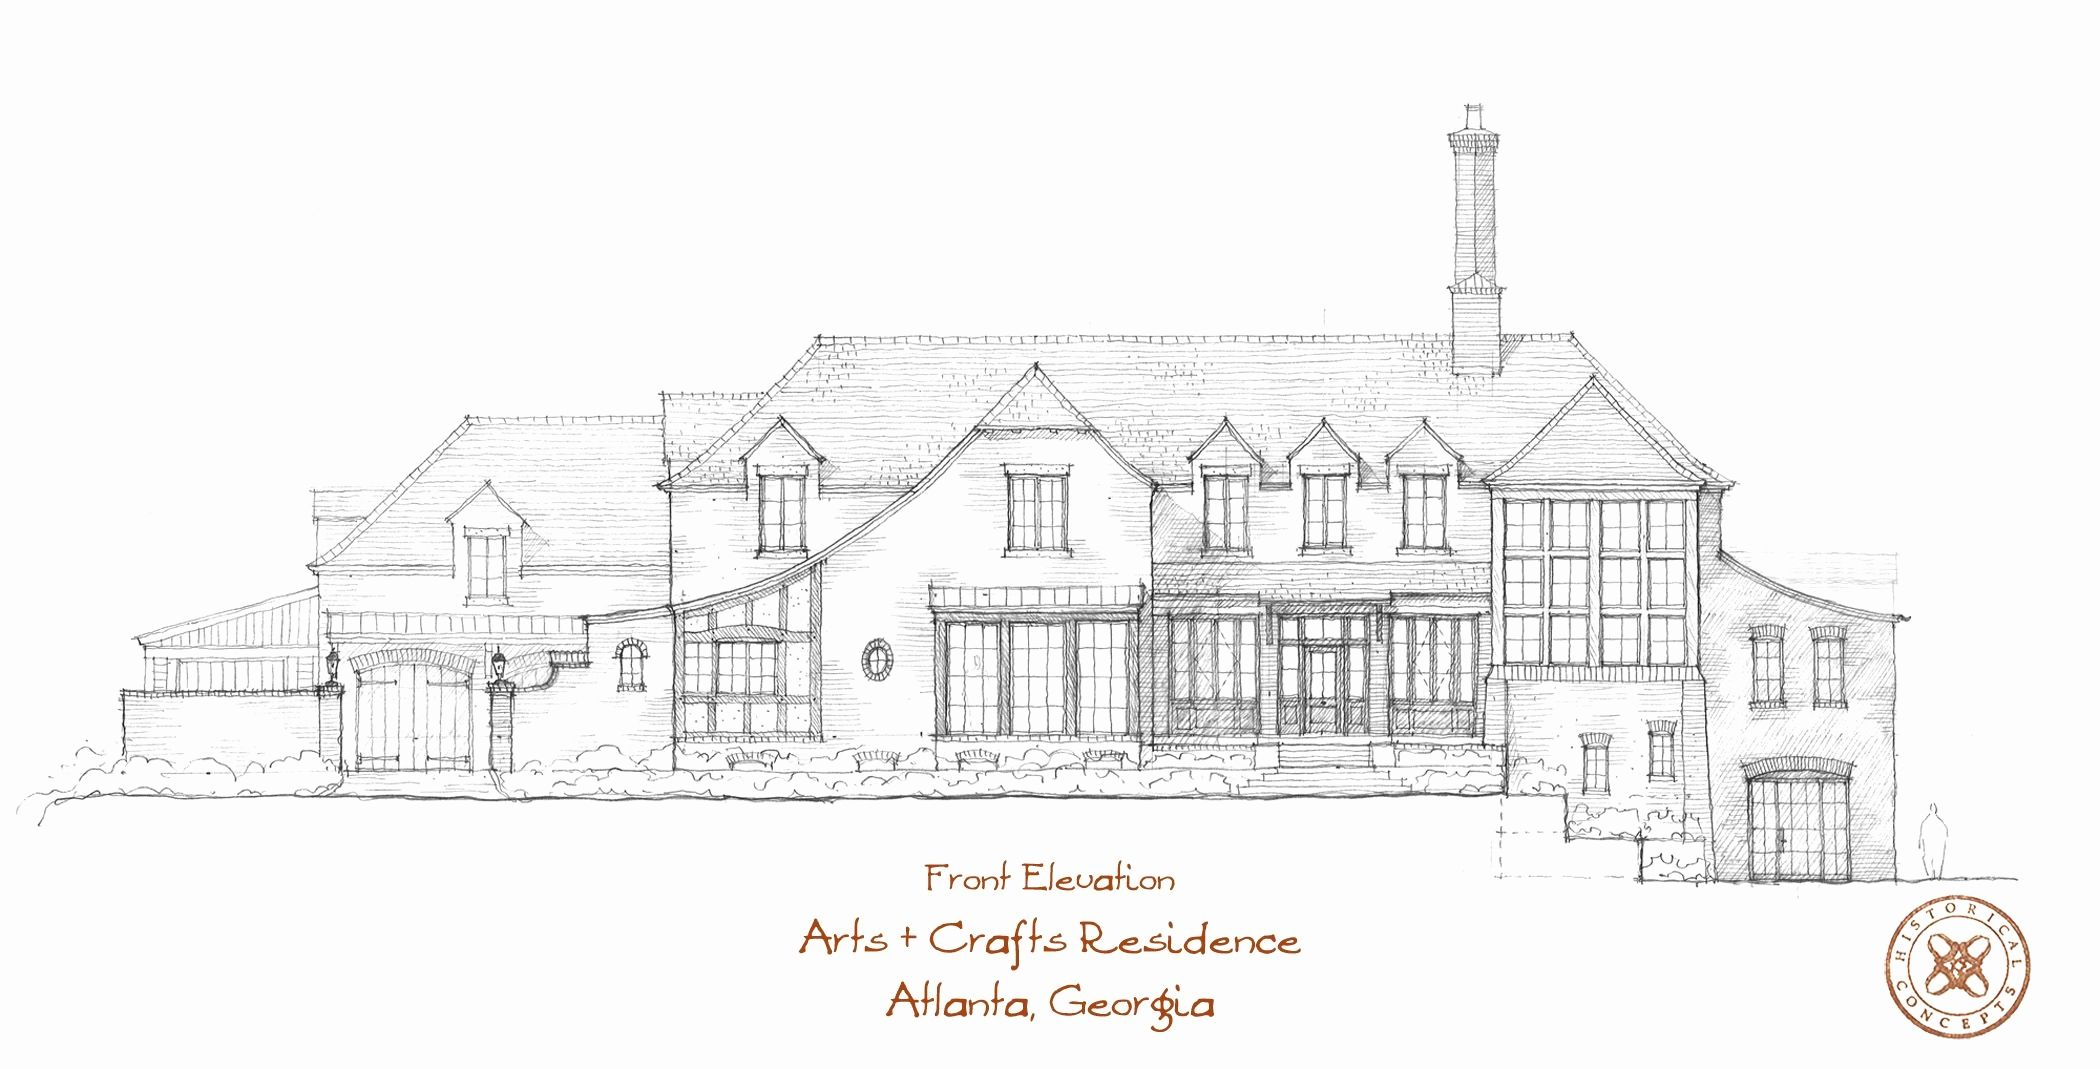 arts and crafts house plans elegant a hand sketch of the front